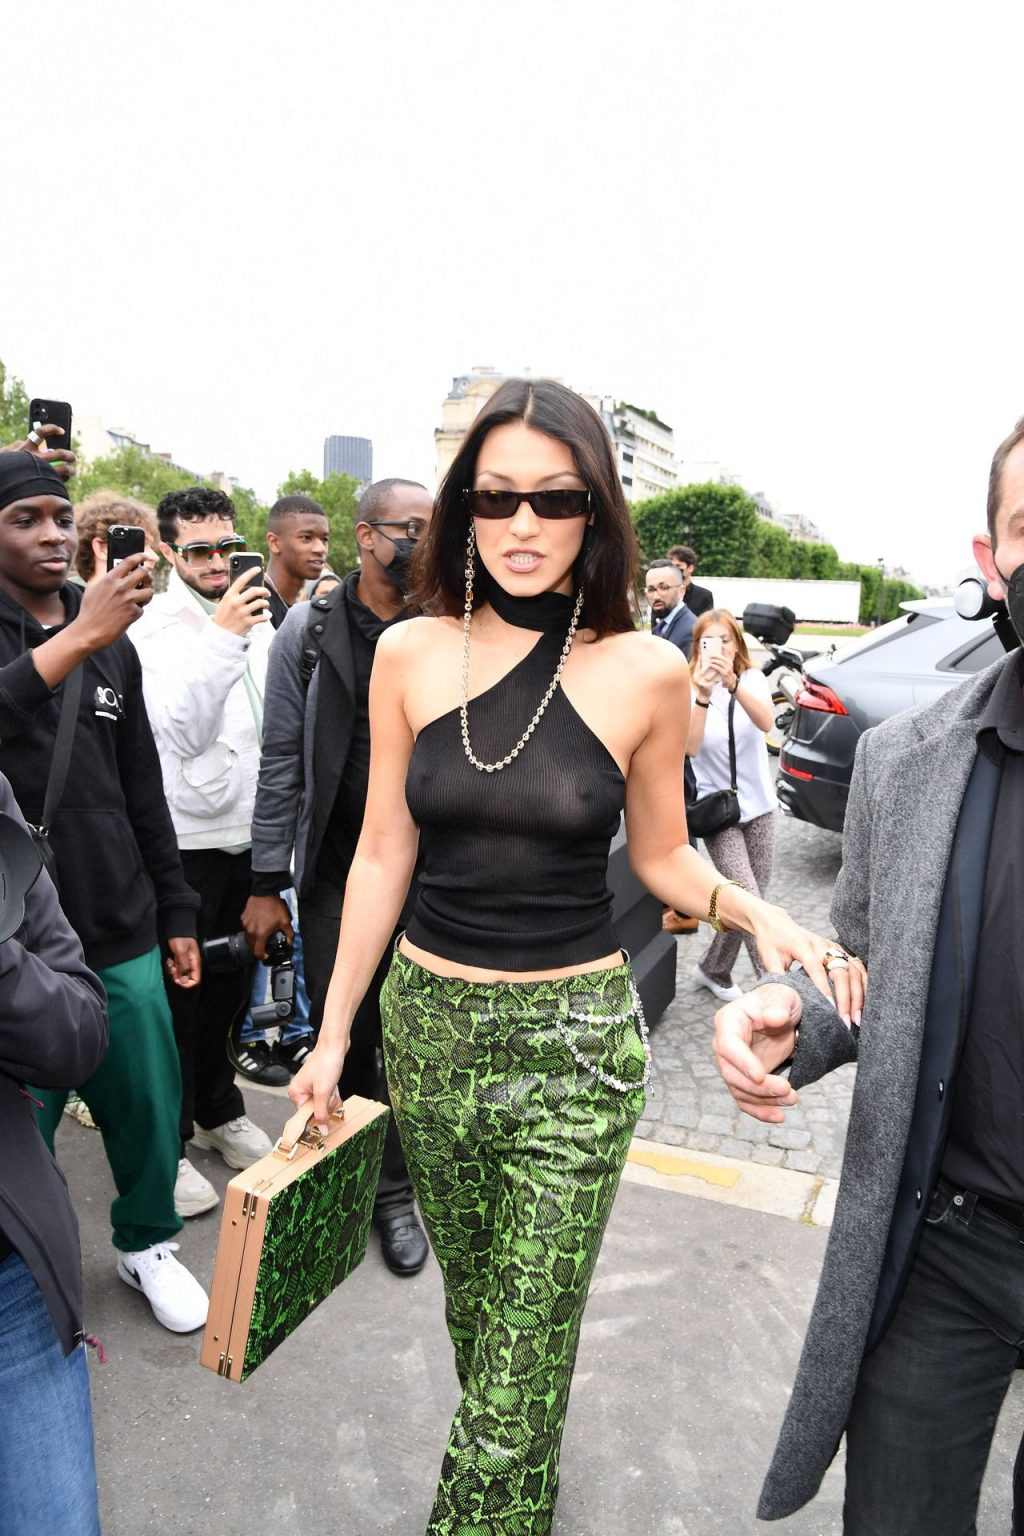 Braless Bella Hadid Arrives at the Men's Fashion Shows in Paris (82 New Photos)